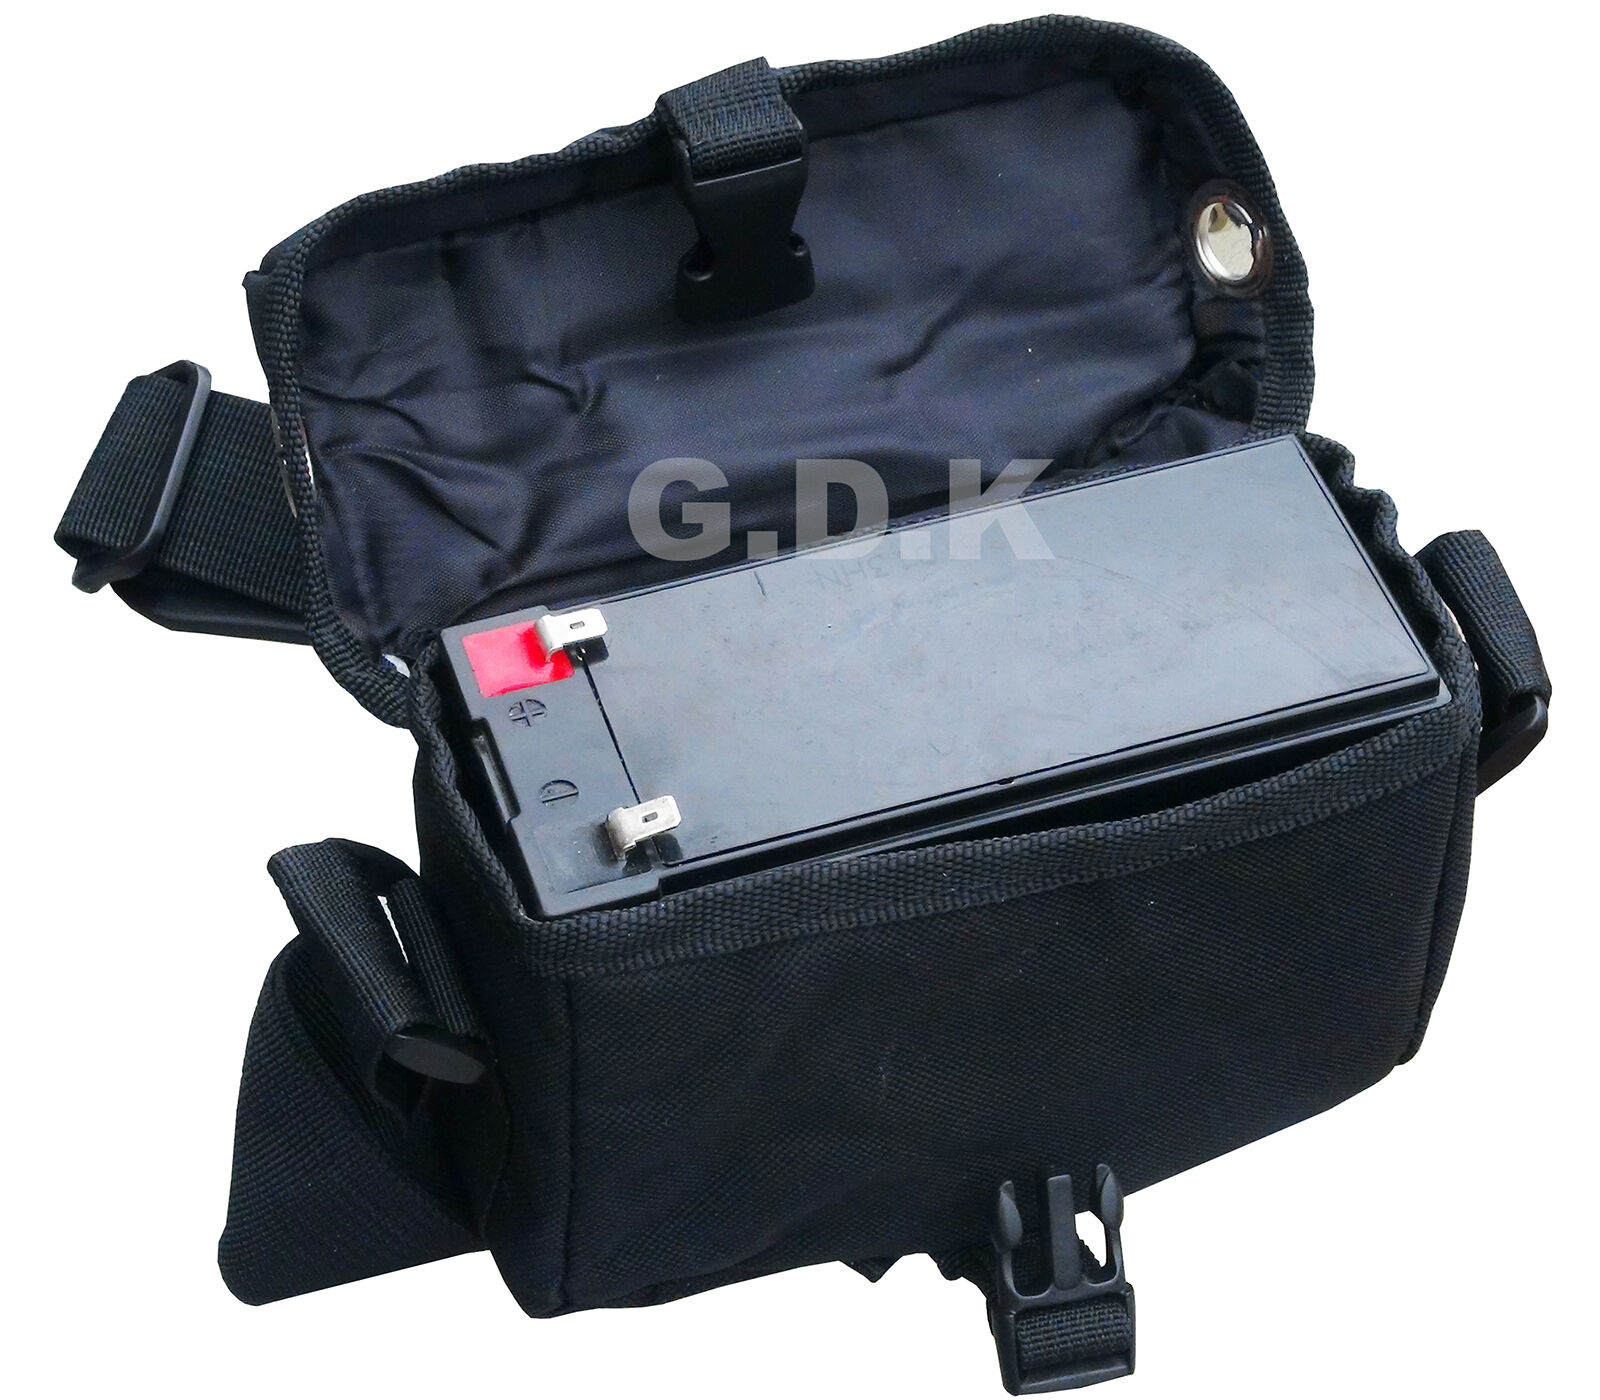 Gdk Battery Pack Kit Charger Battery Case Pigeon